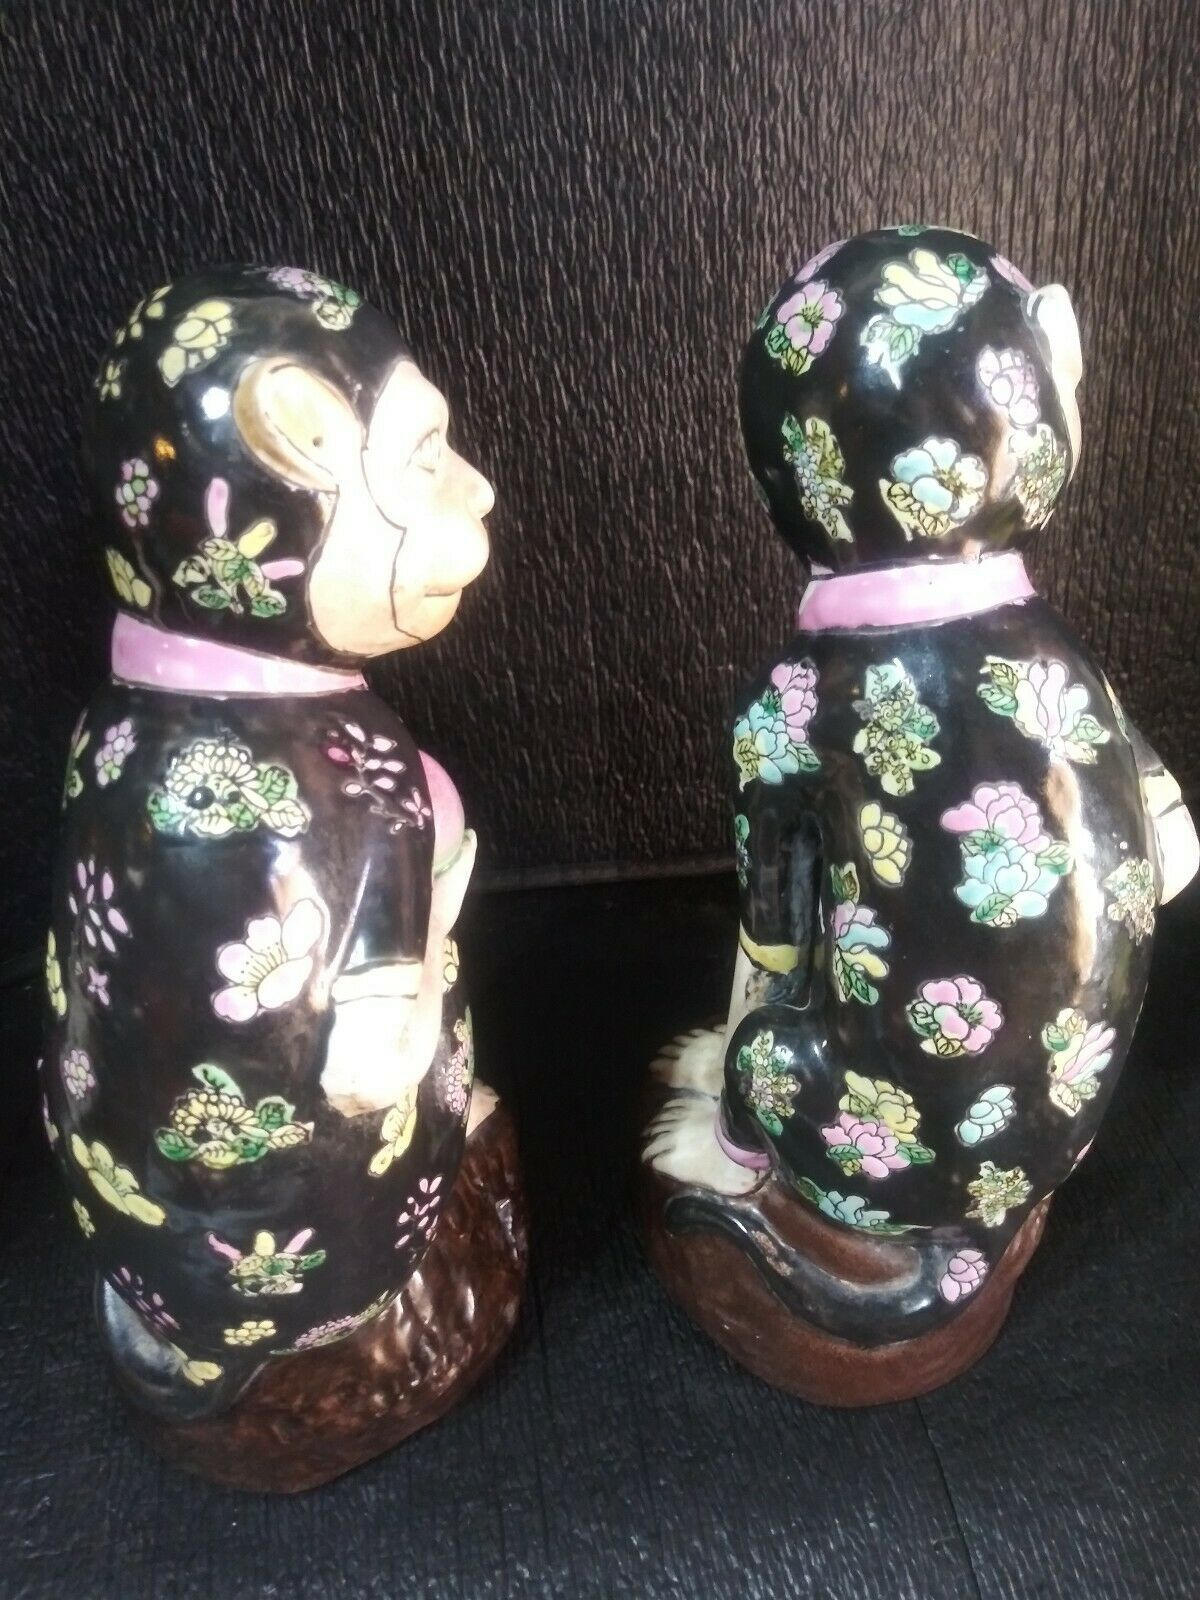 Stunning Pair of Porcelain Ceramic Monkey Figurines collectible Vintage [abb-7]